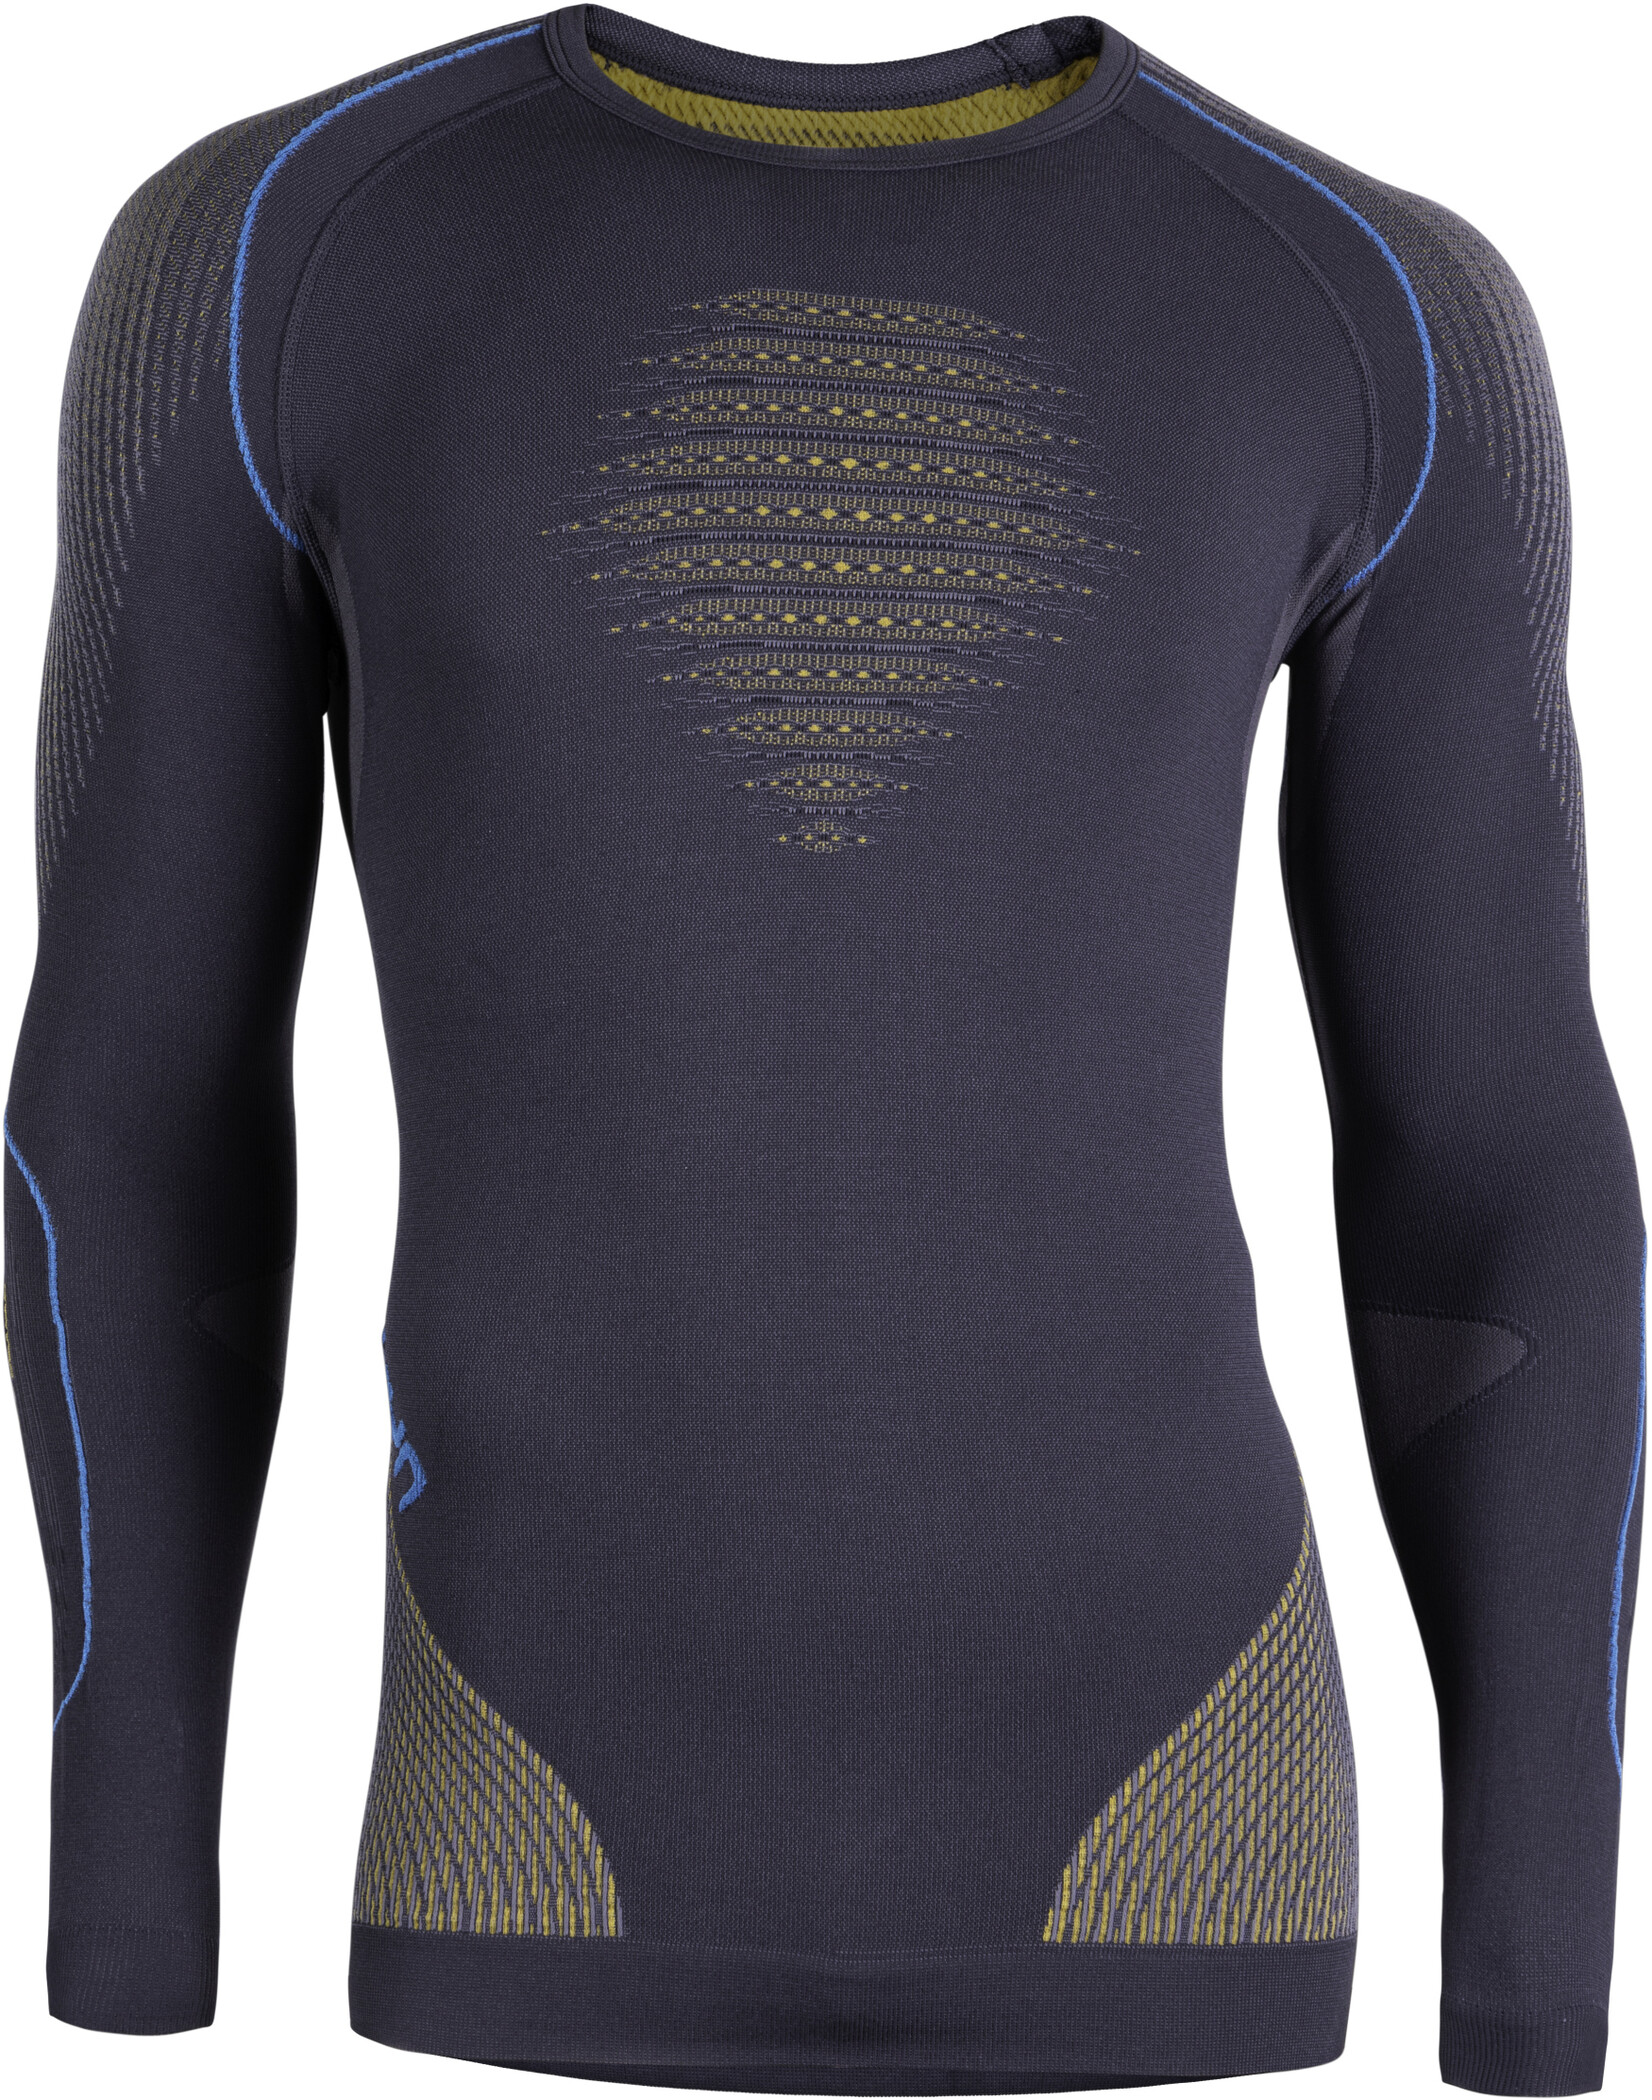 UYN Evolutyon UW Undertøj Herrer, charcoal/gold/atlantic (2019) | Base layers